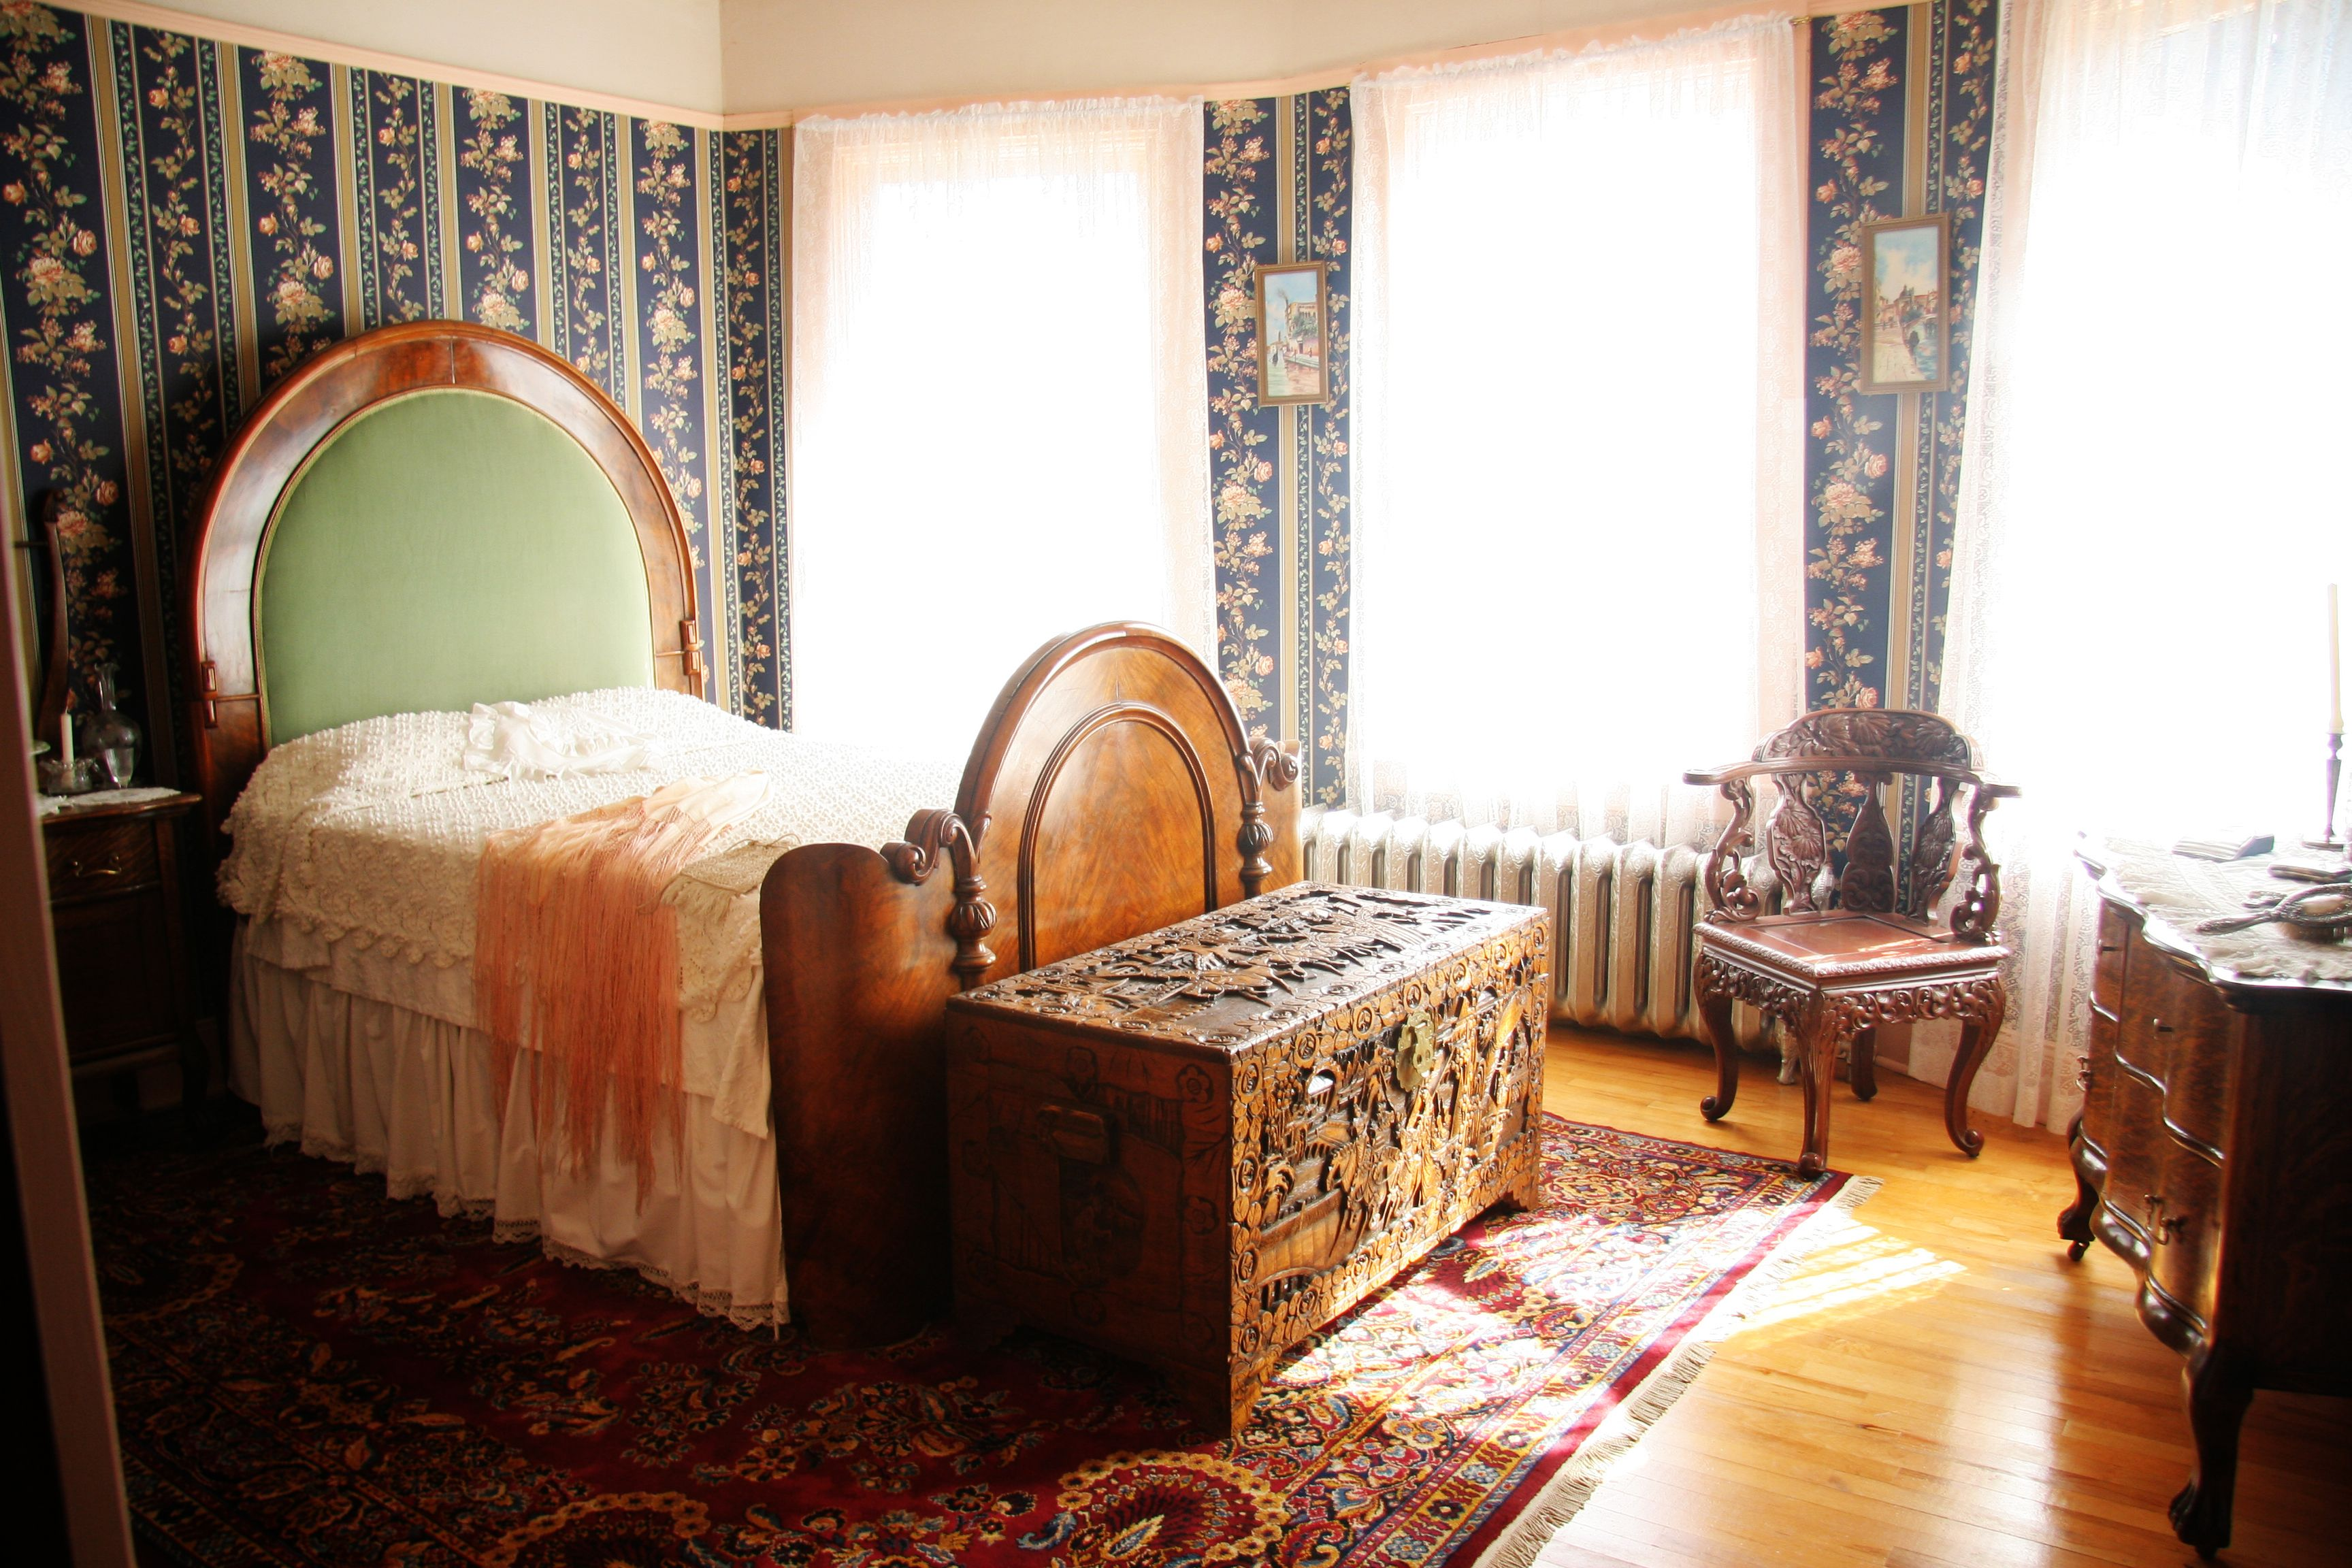 http://sysanin.com/wp-content/uploads/2015/12/bedroom-old-fashioned ...